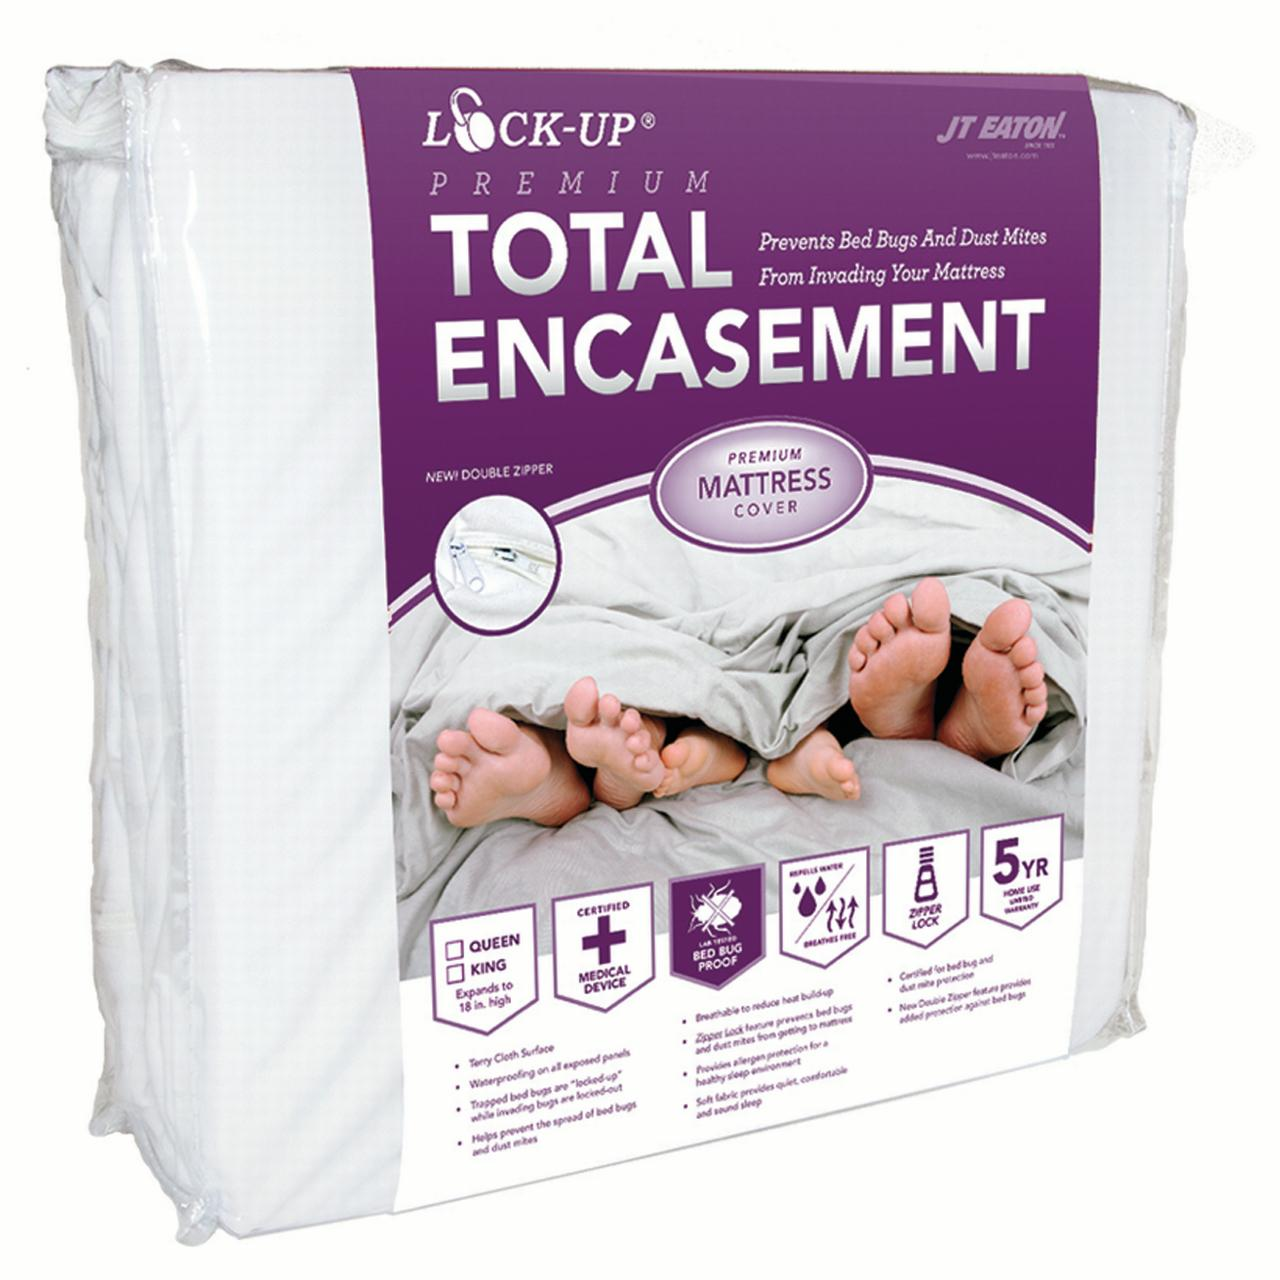 JT Eaton 81TWXLENC Lock-Up Total Encasement Bed Bug Protection for Mattress, TwinXL